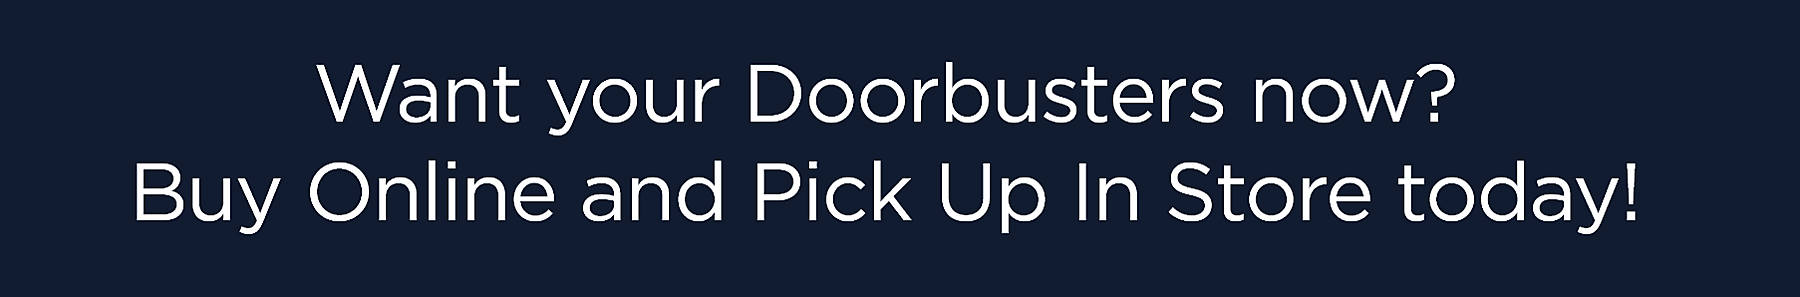 Want your doorbusters now? Buy Online and Pick Up In Store today!